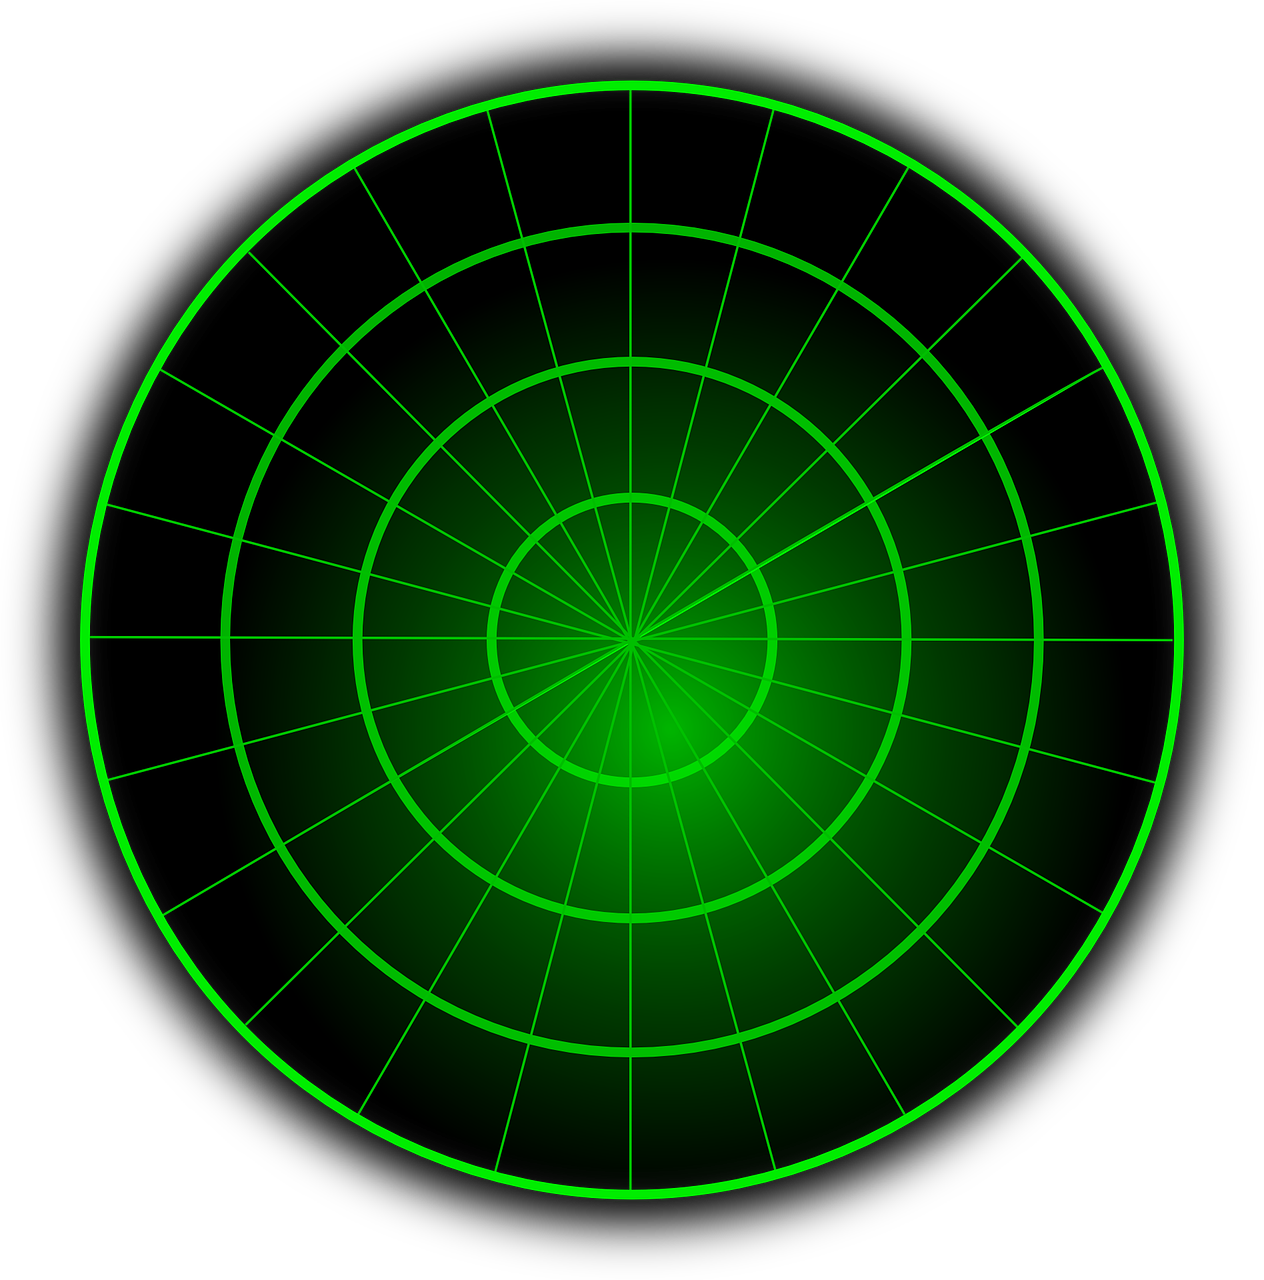 Image of a radar display